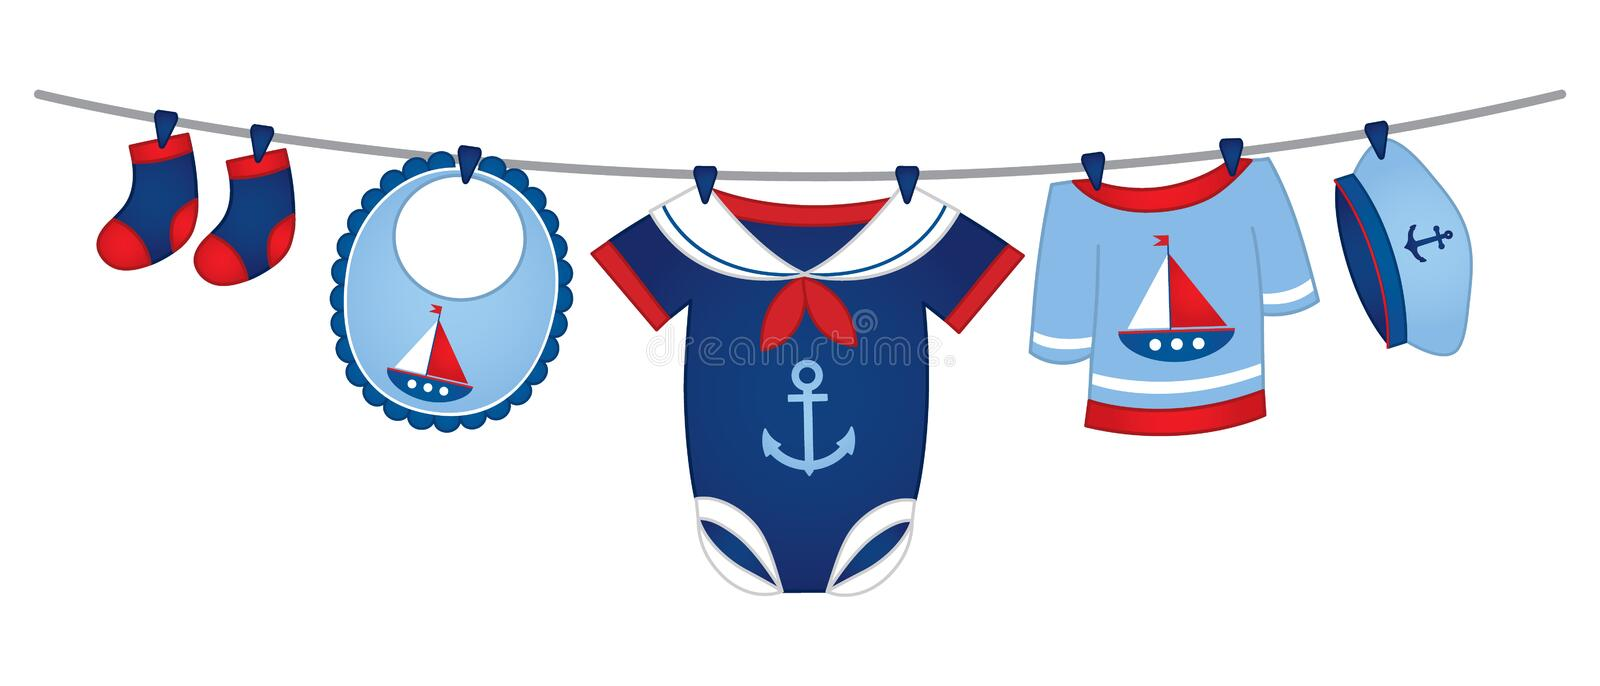 Vector Baby Clothes in Nautical Style royalty free illustration